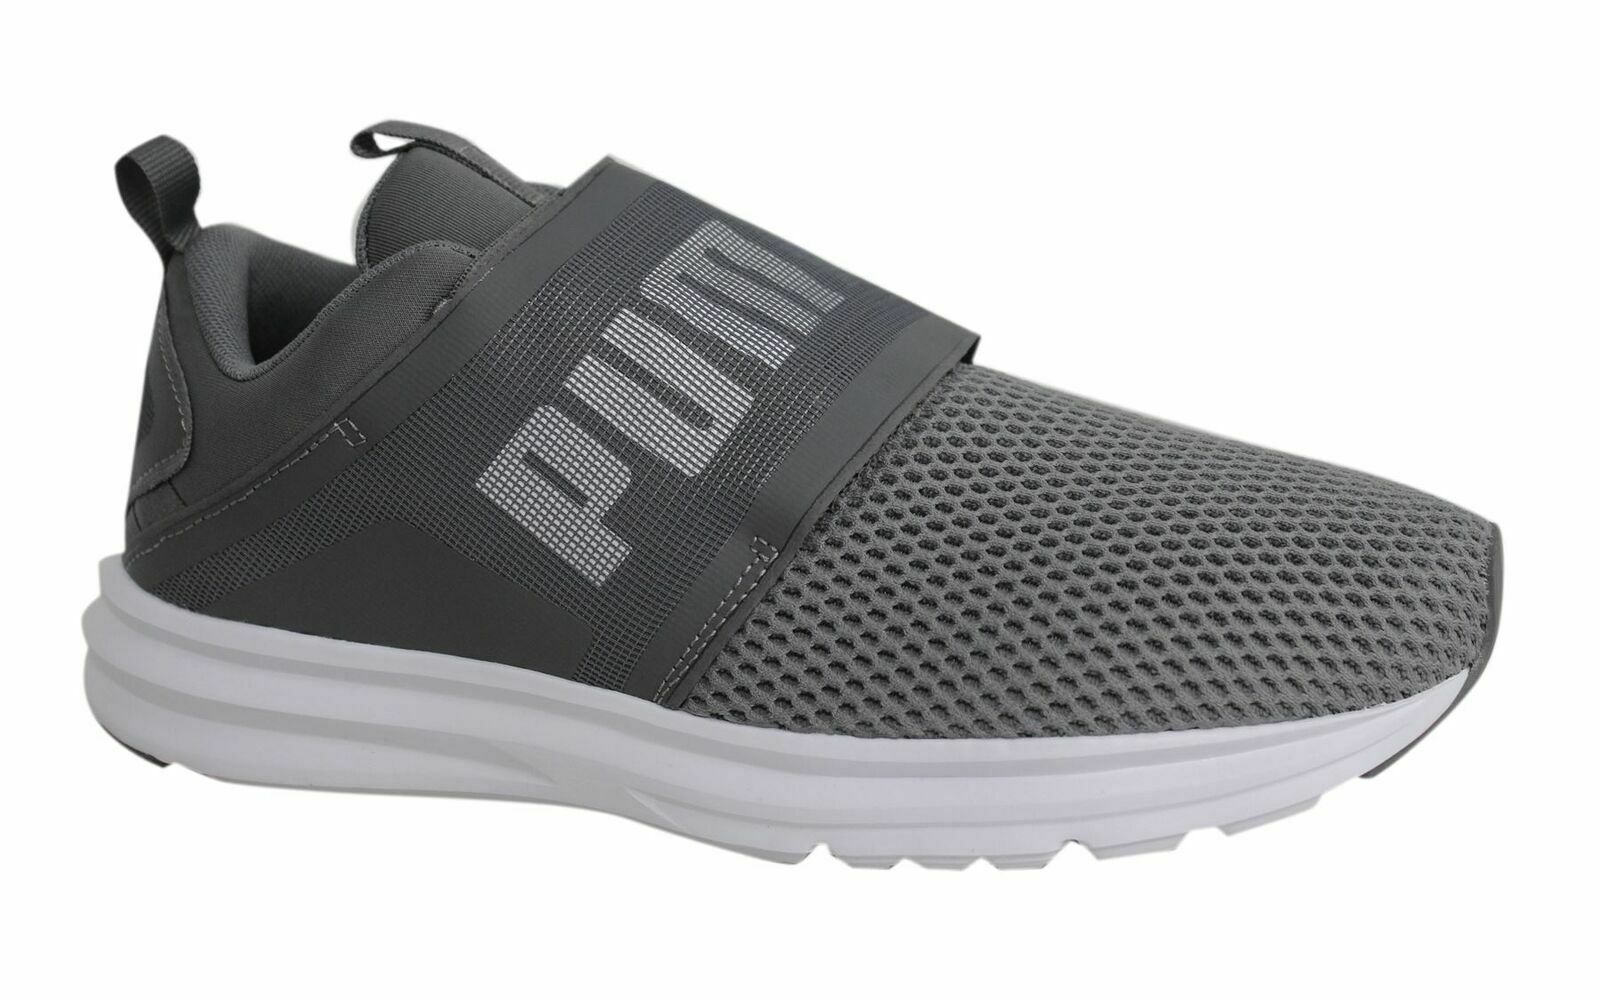 Puma Enzo Lace Up Strap Up Mens Grey White Textile Trainers 190024 04 M15 6ee4fa56b